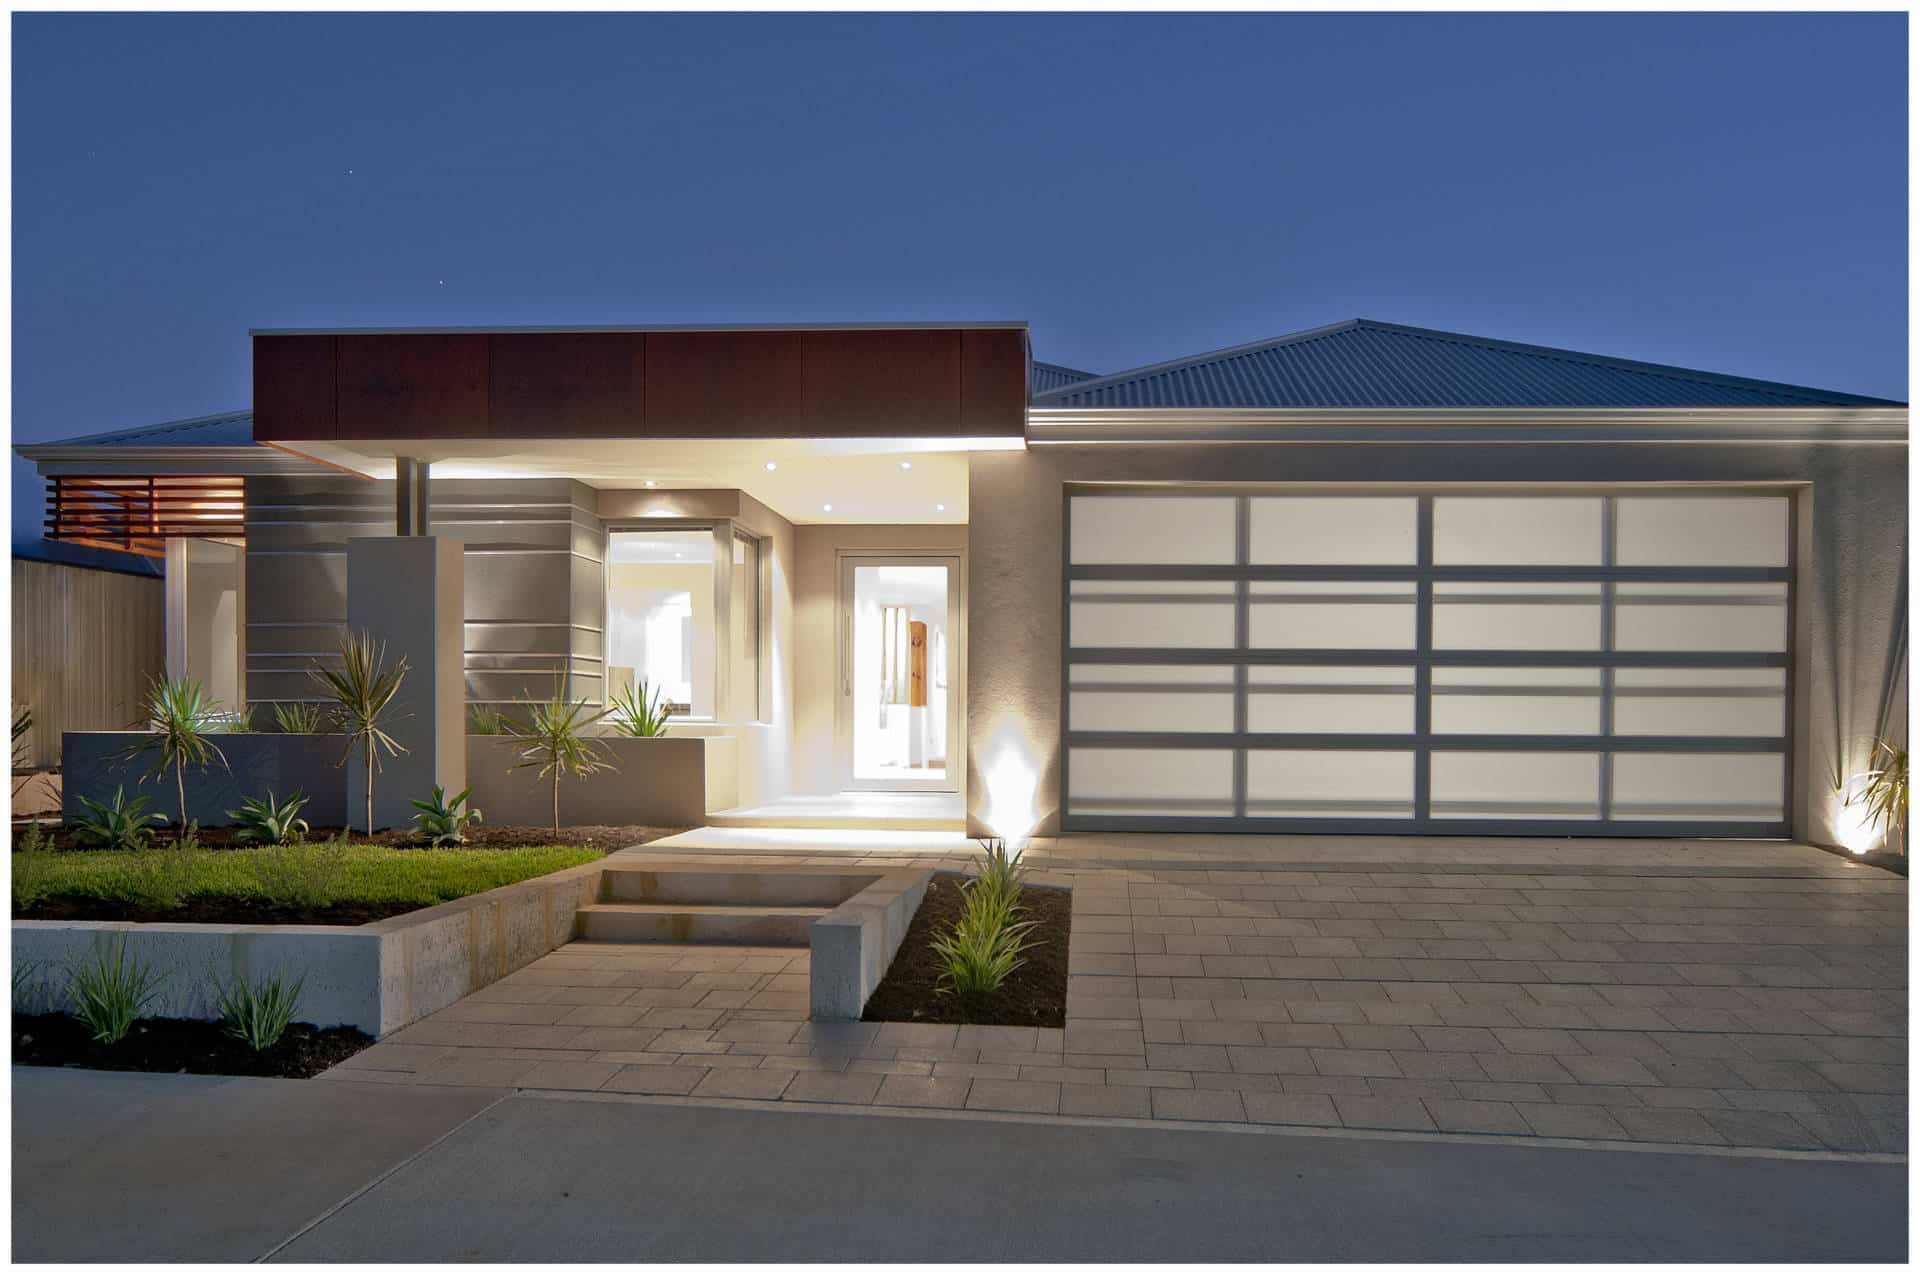 https://www.wowhomes.com.au/wp-content/uploads/2019/05/027-Open2view-ID172044-1720-Glendale-Turn.jpg